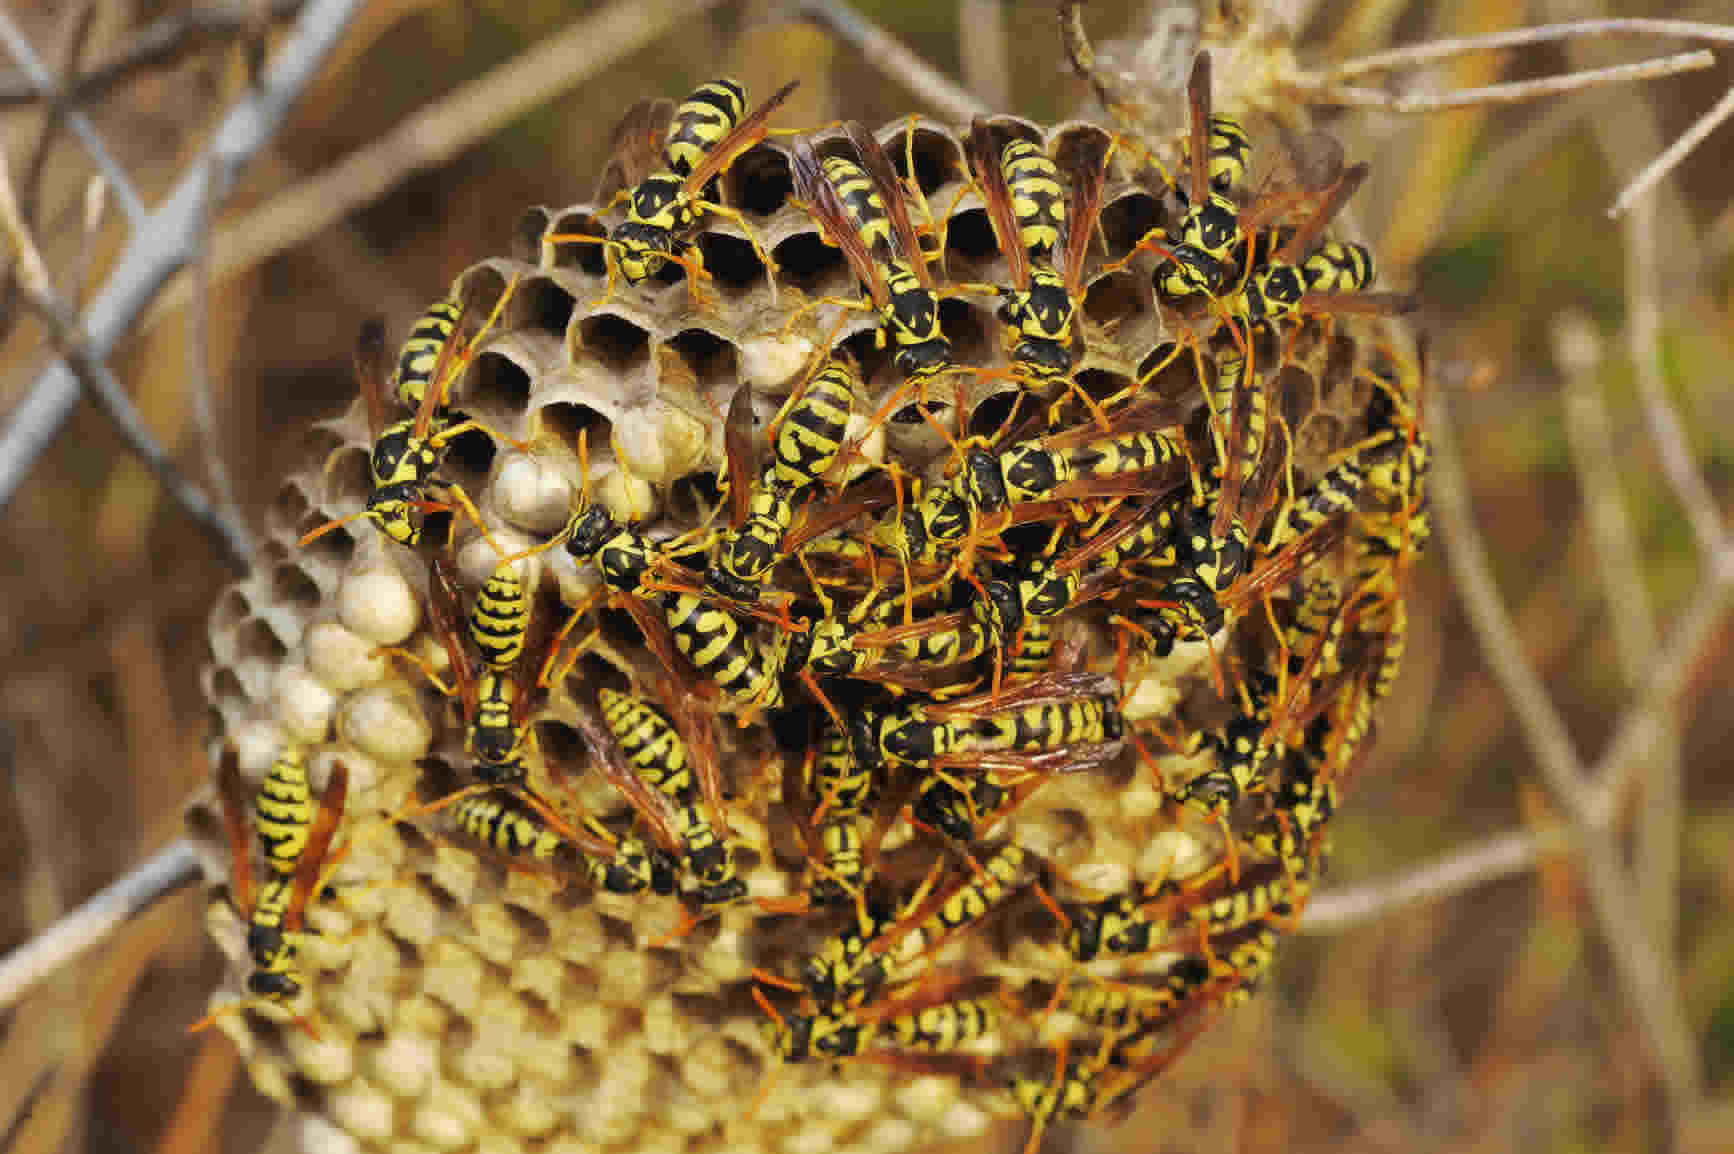 wasp nest picture